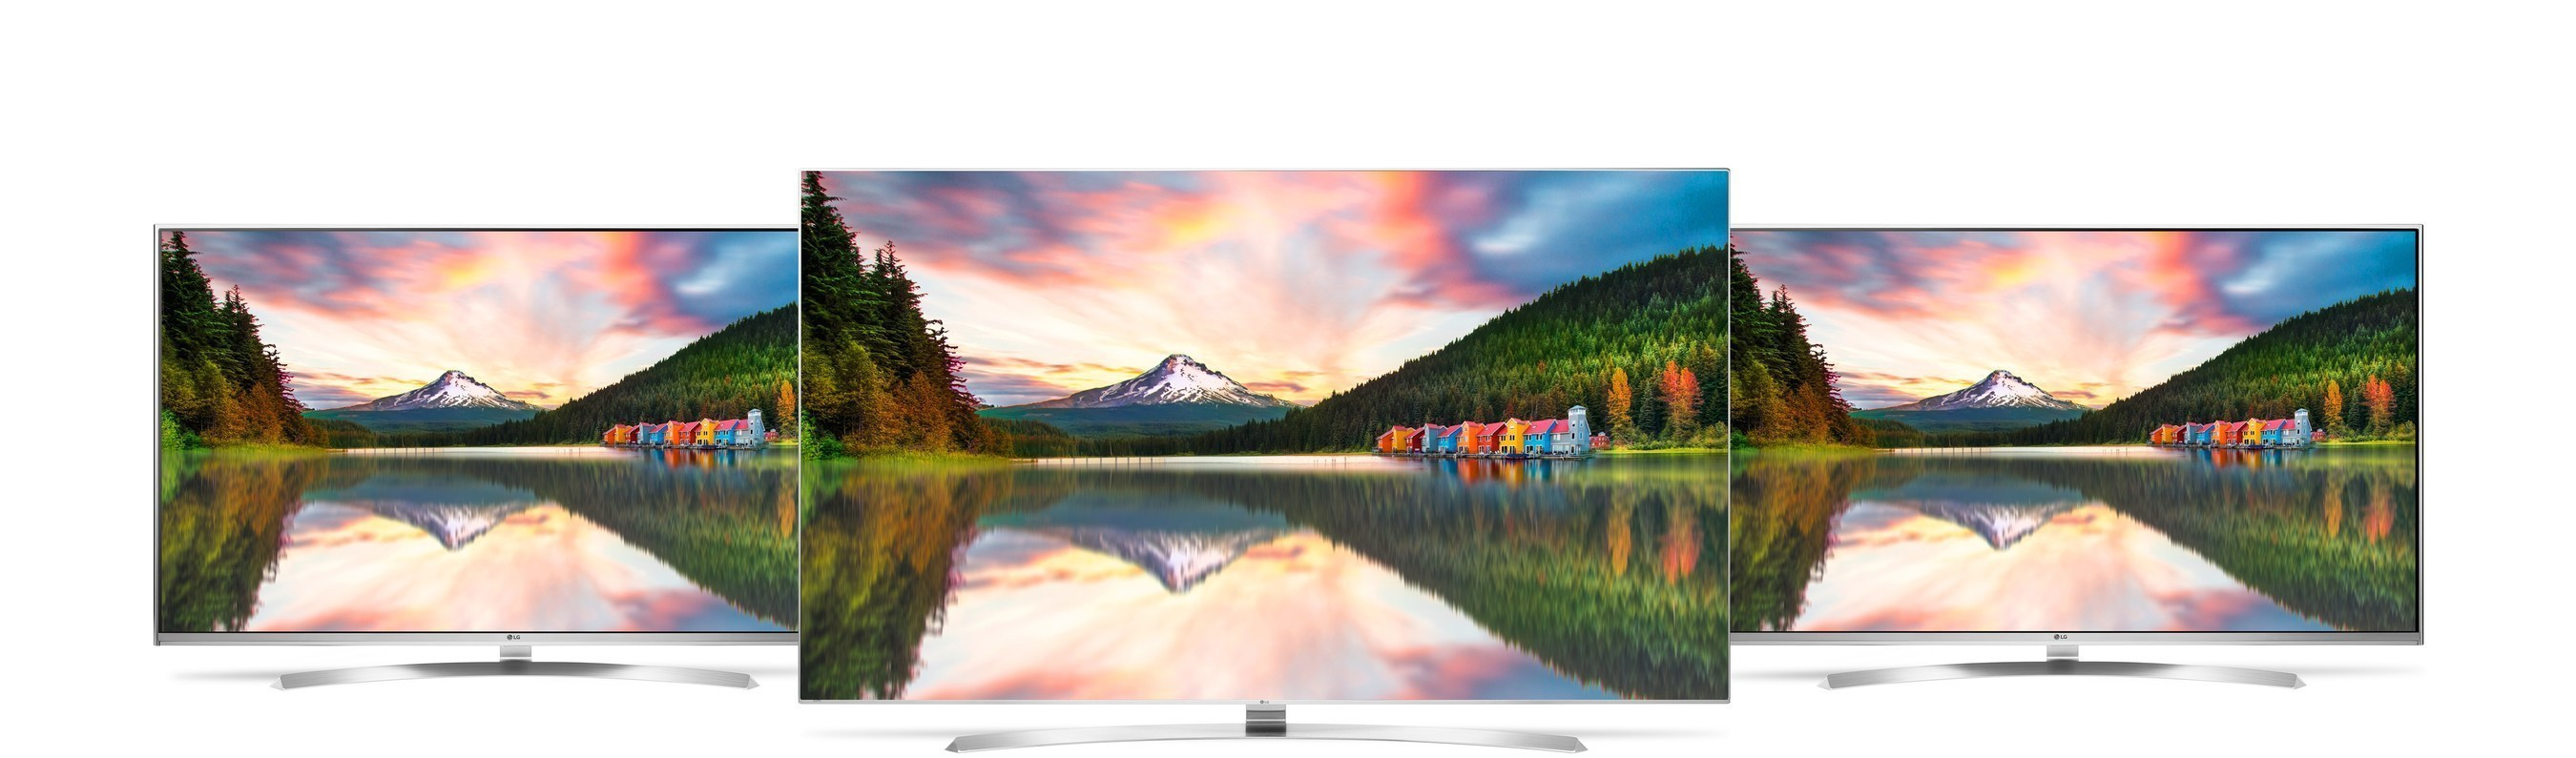 The LG SUPER UHD line for the U.S. boasts four series, including the UH9500, the UH8500 and the UH7700. The top-of-the-line UH9500, UH8500 and UH7700 LG SUPER UHD series boast an advanced IPS display with innovations such as True Black Panel and Contrast Maximizer for advanced picture quality at wide viewing angles.